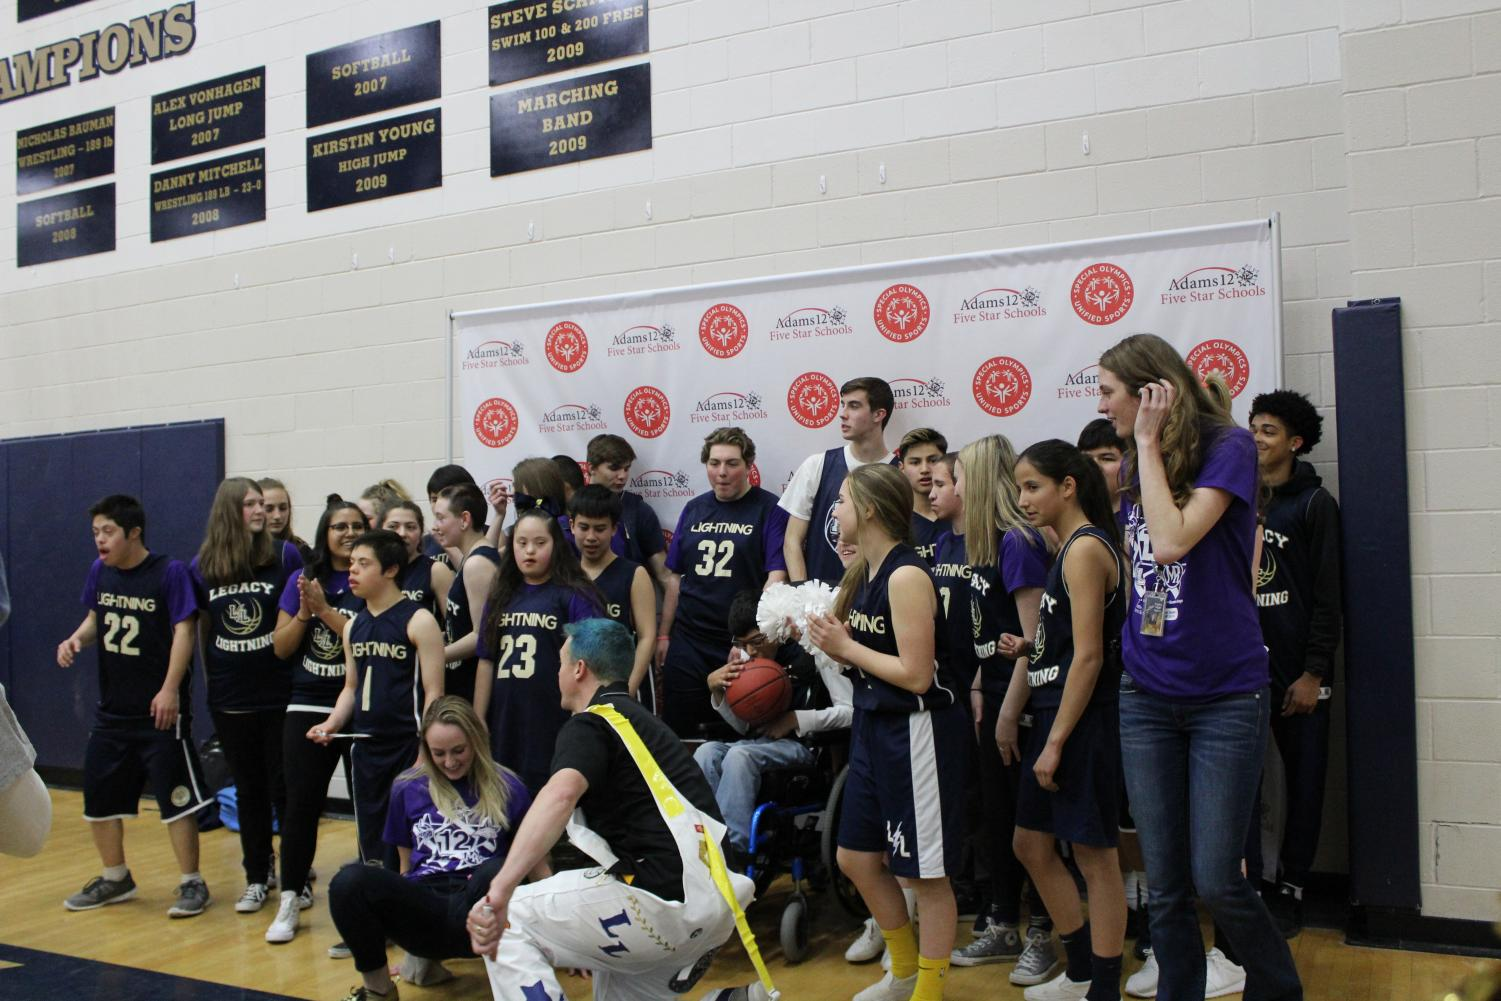 Legacy's Unified team poses for a photo after winning their game against Northglenn.